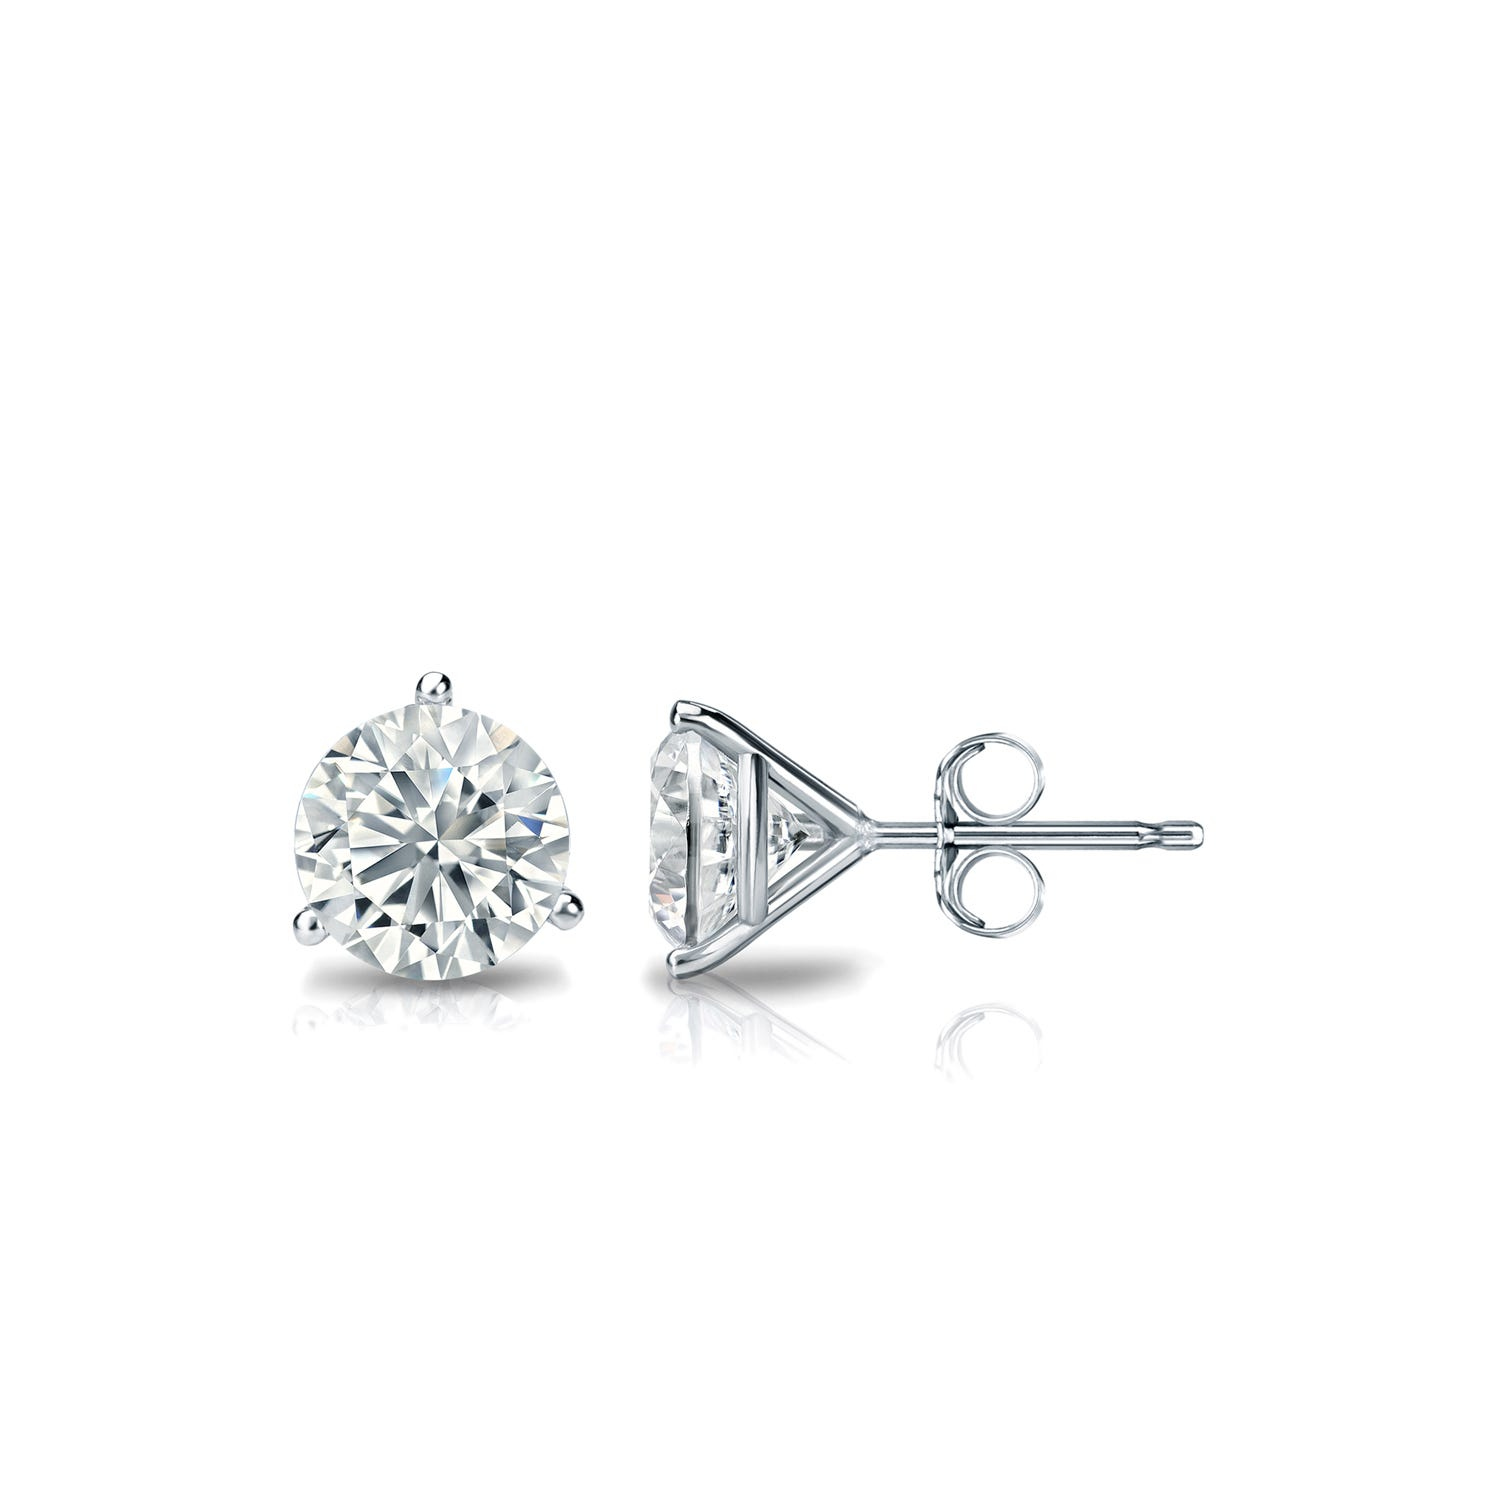 5/8 CTTW Round Diamond Solitaire Stud Earrings IJ VS2 in Platinum 3-Prong Setting